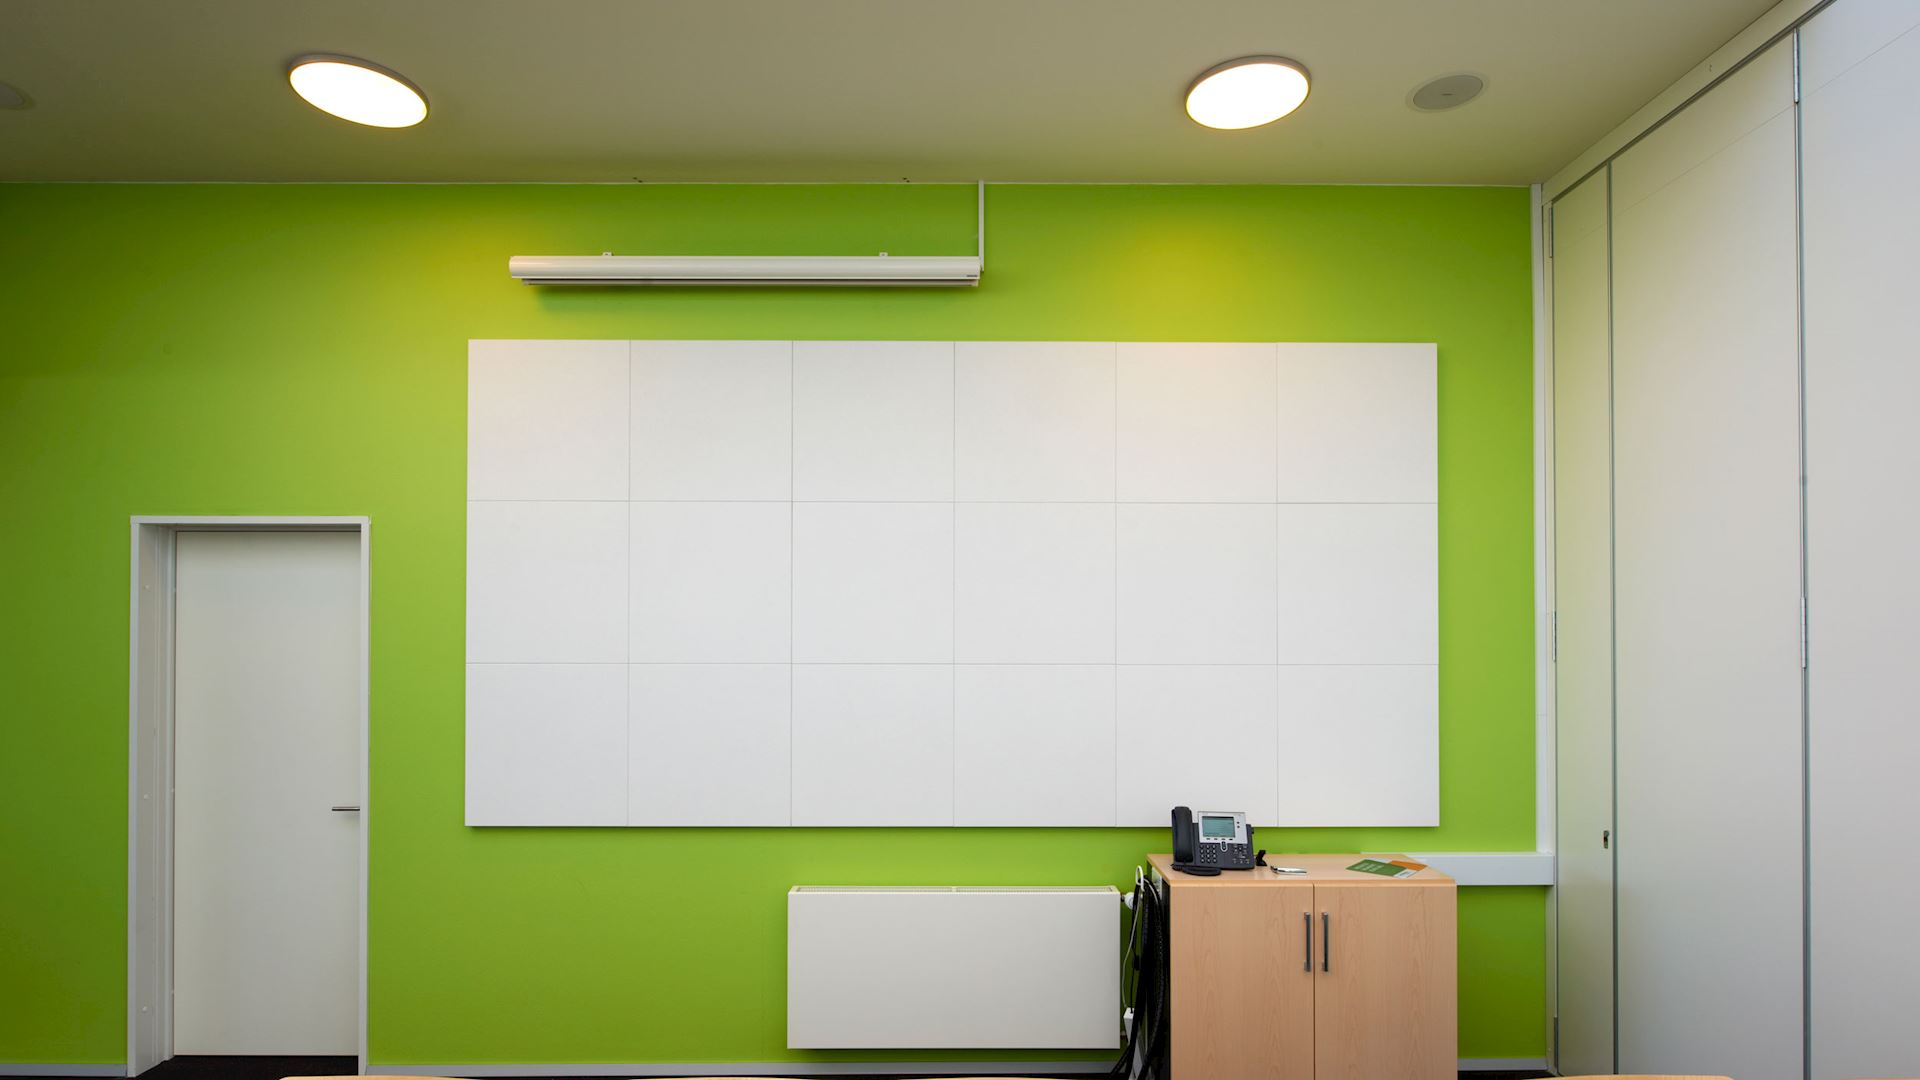 Acoustic wall panels with Rockfon Blanka Activity wall panel (designed for classrooms and open plan offices), super white painted fleece